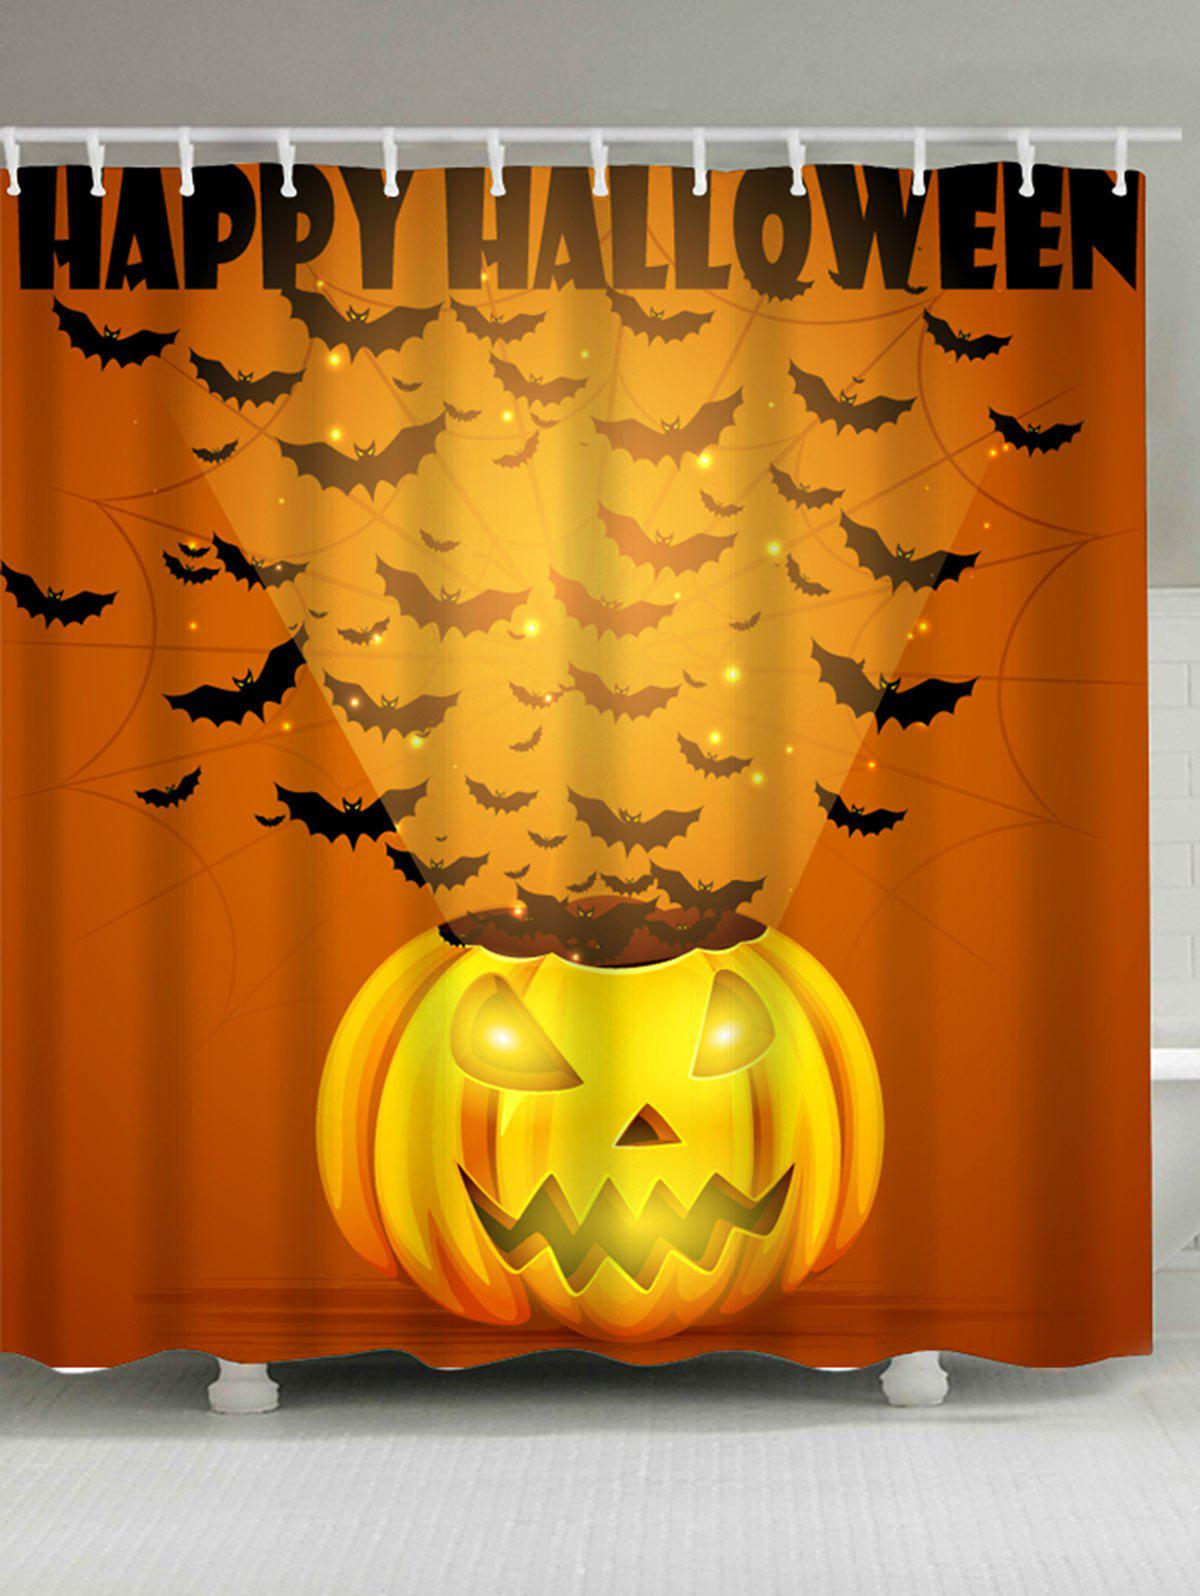 Waterproof Halloween Pumpkin Bats Printed Shower CurtainHOME<br><br>Size: W71 INCH * L71 INCH; Color: GINGER; Products Type: Shower Curtains; Materials: Polyester; Pattern: Pumpkin; Style: Festival; Number of Hook Holes: 12; Package Contents: 1 x Shower Curtain 1 x Hooks (Set);